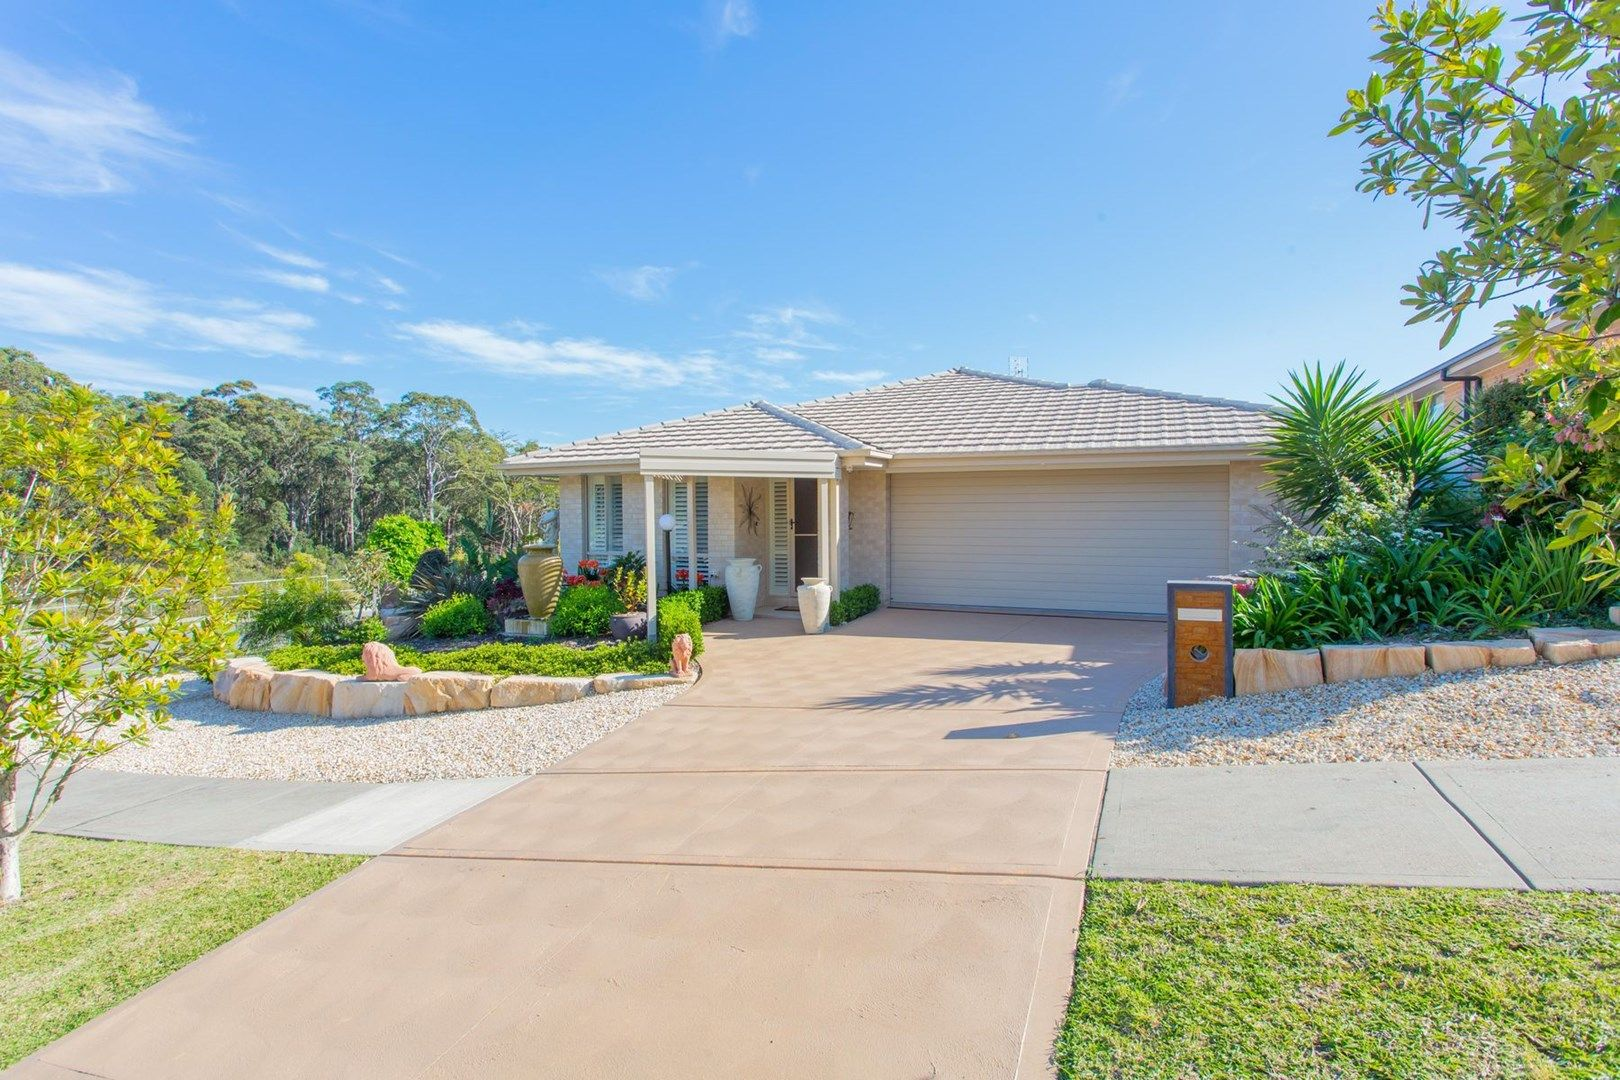 12 Rhubina Way, Buttaba NSW 2283, Image 0